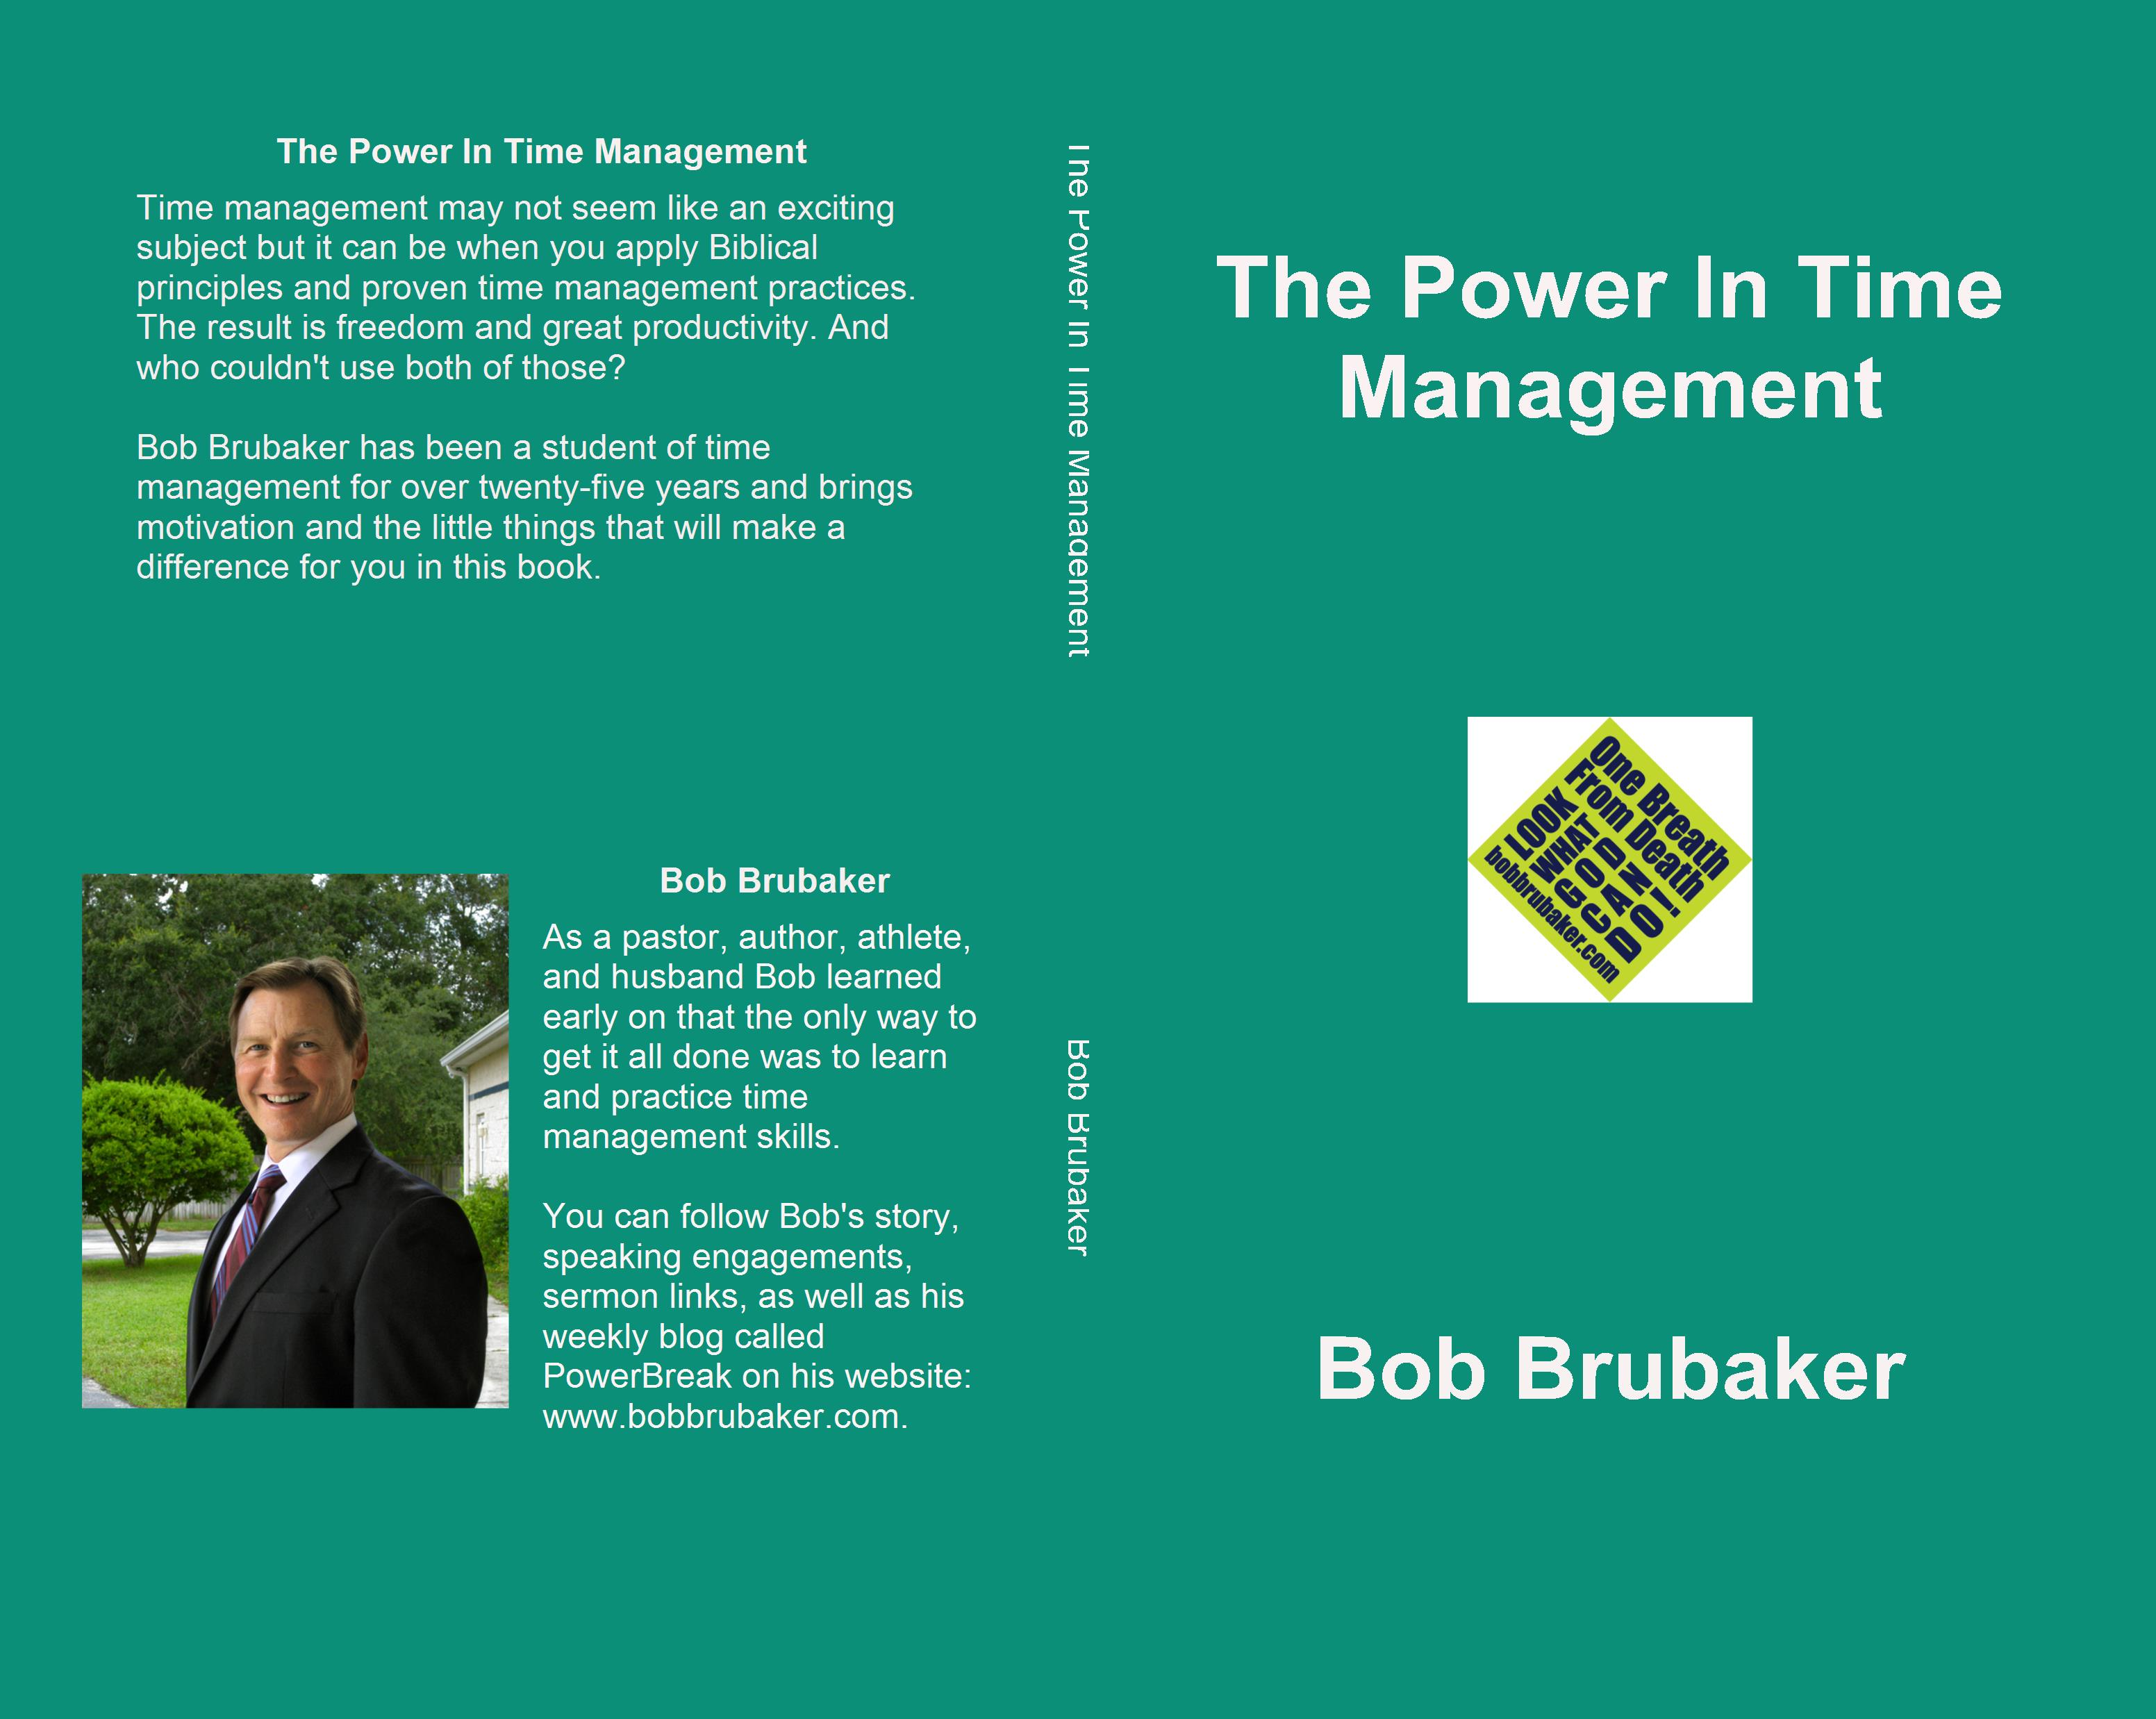 The Power In Time Management cover image